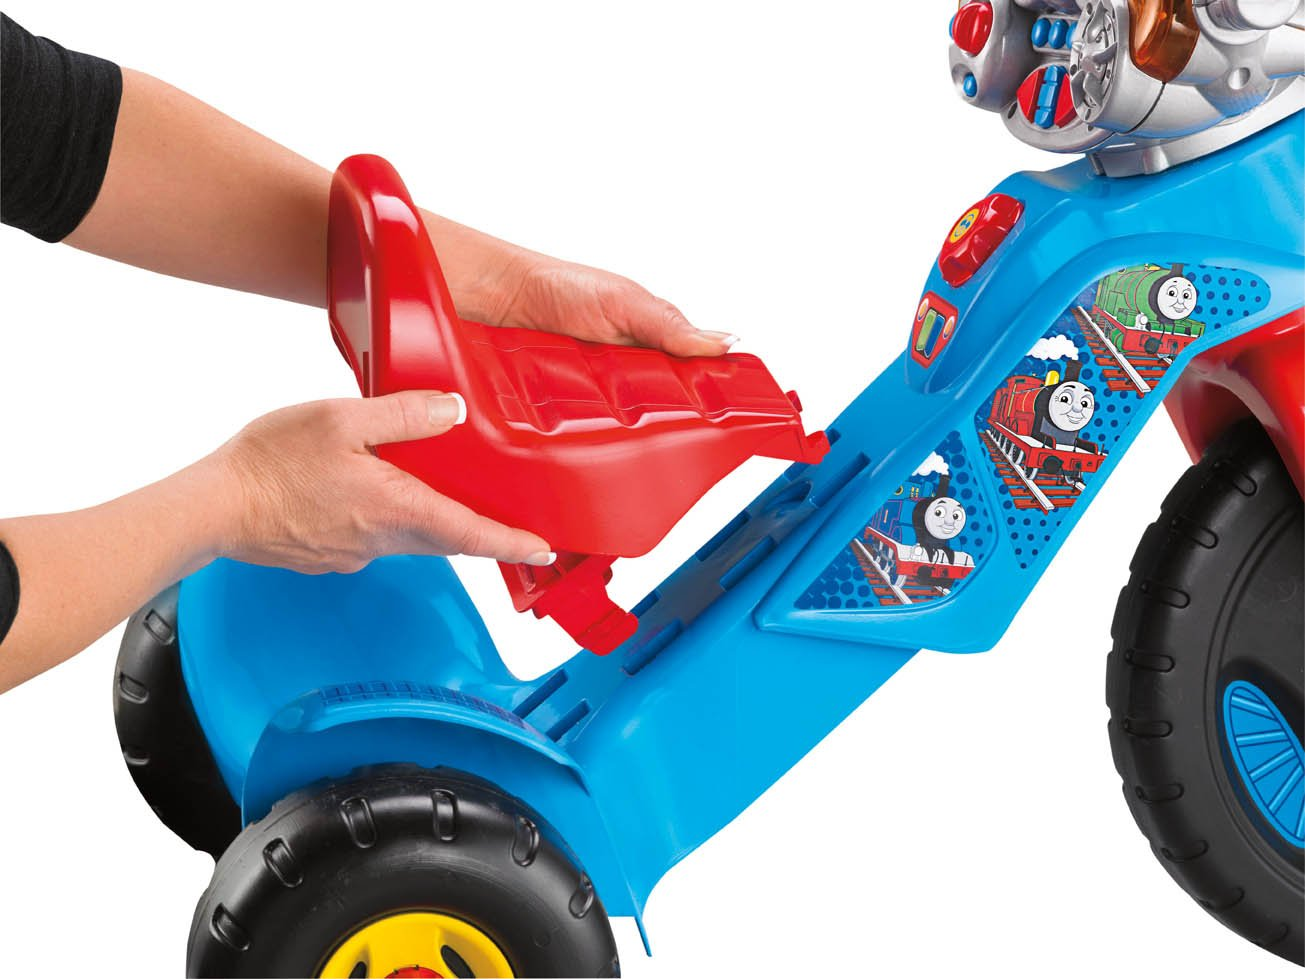 Thomas the Train: Lights and Sounds Trike